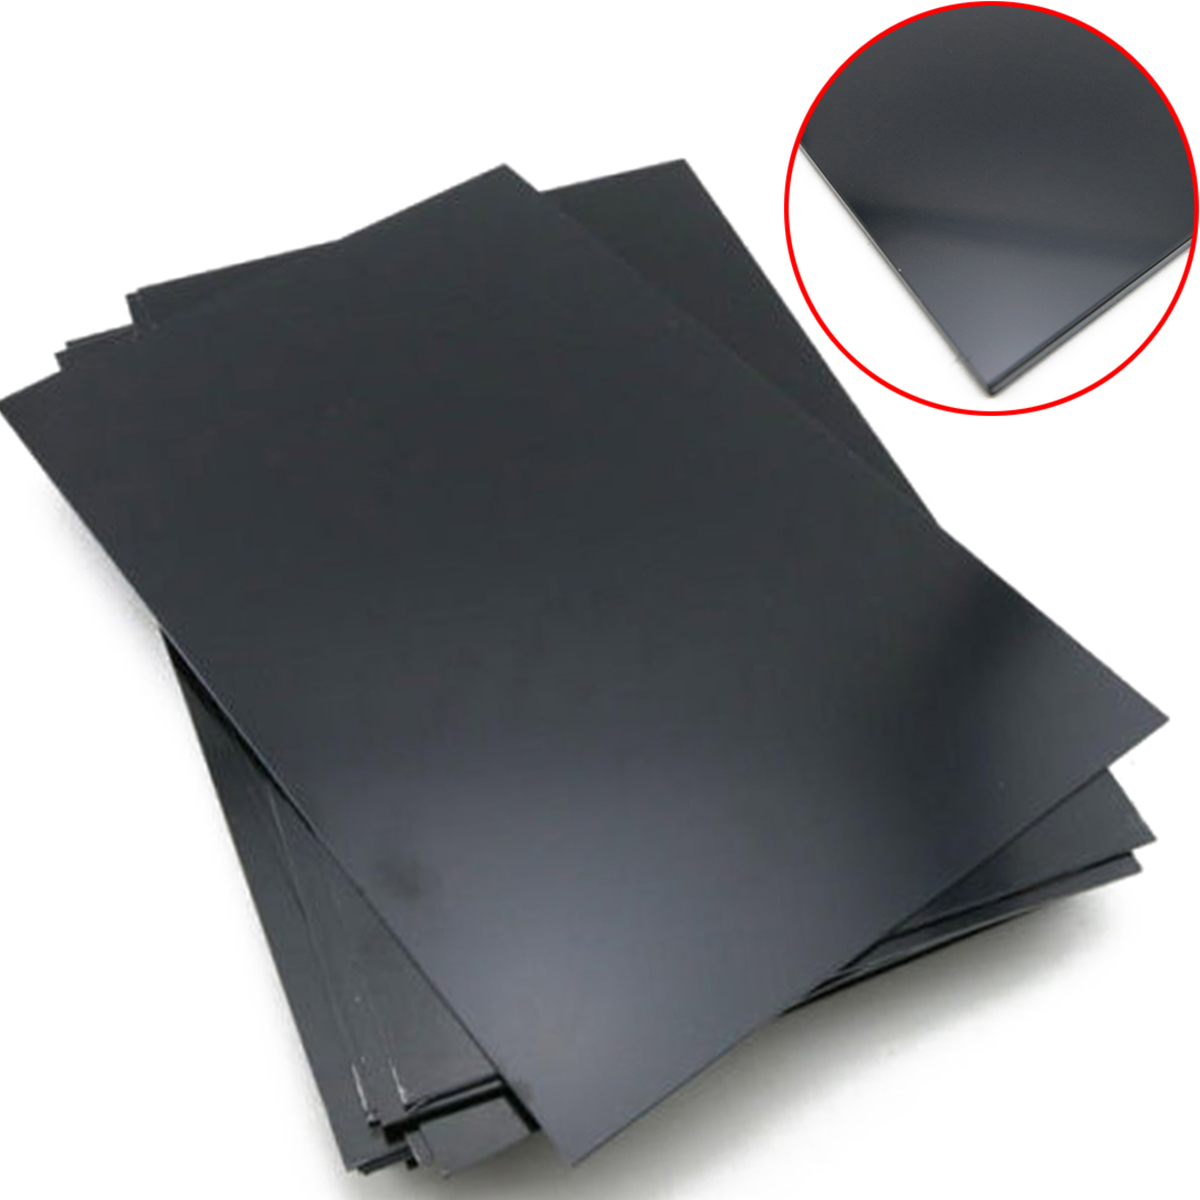 DWZ 1 Piece New Durable Black ABS Styrene Plastic Flat Sheet Plate 0.5mm Thickness